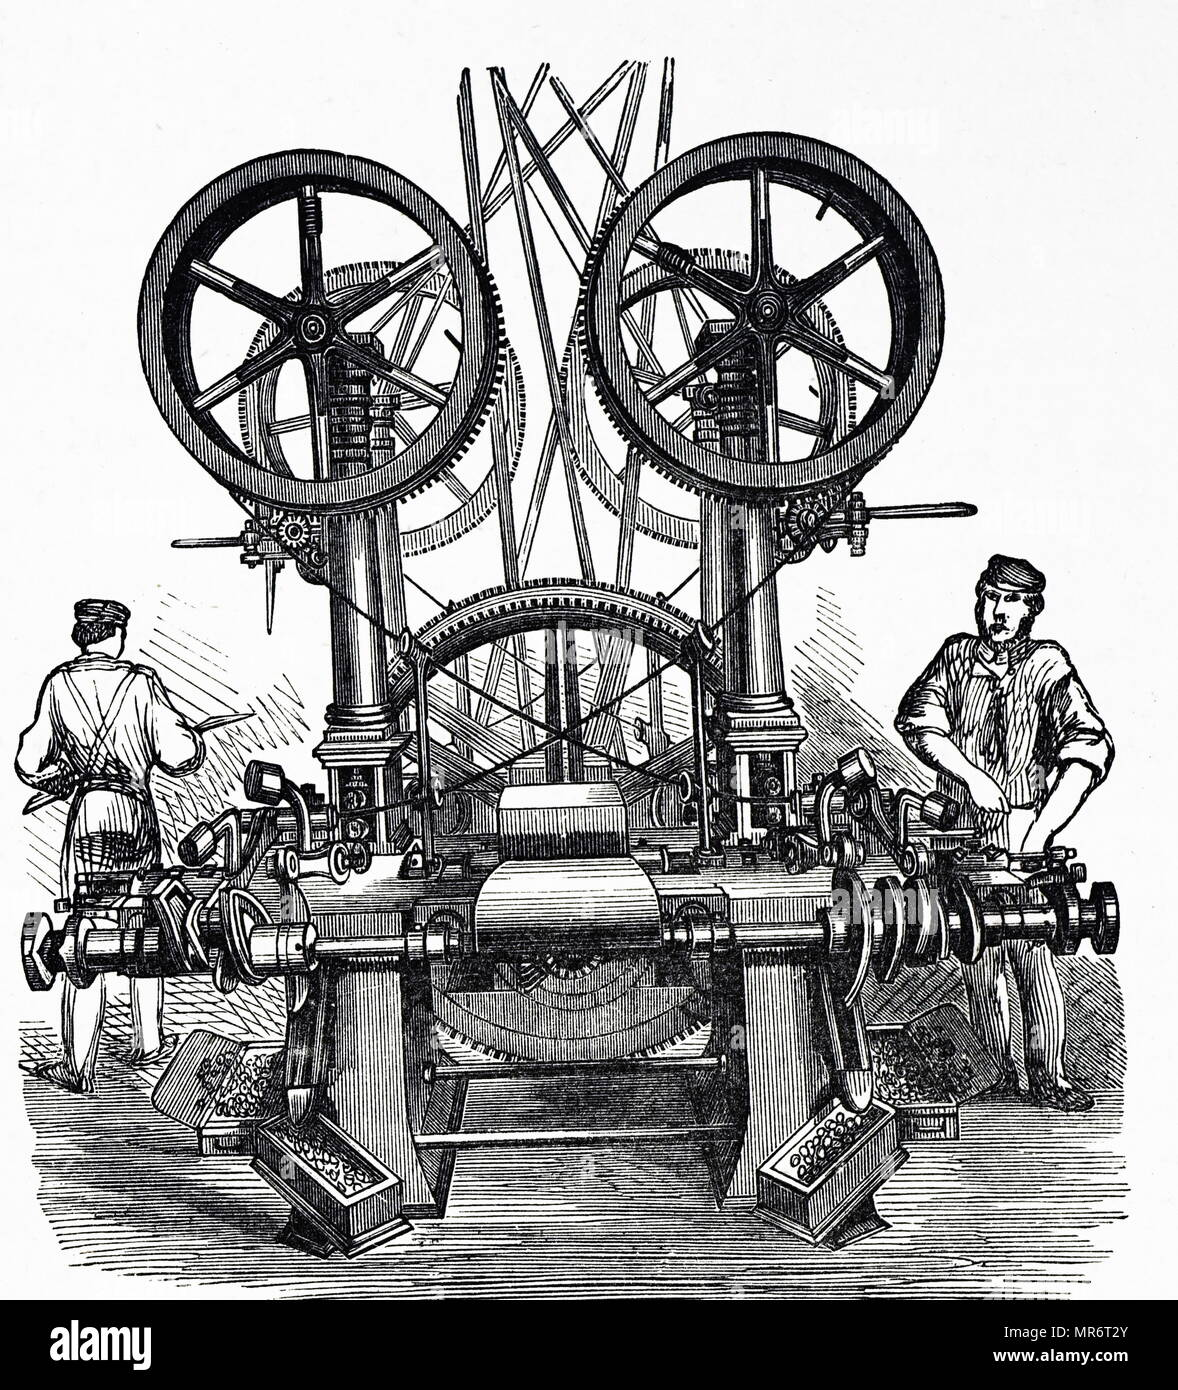 Engraving depicting the making of Minié balls at Woolwich Arsenal. The Minié ball was invented by Claude-Étienne Minié (1804-1879) a French Army officer and inventor. Dated 19th century - Stock Image